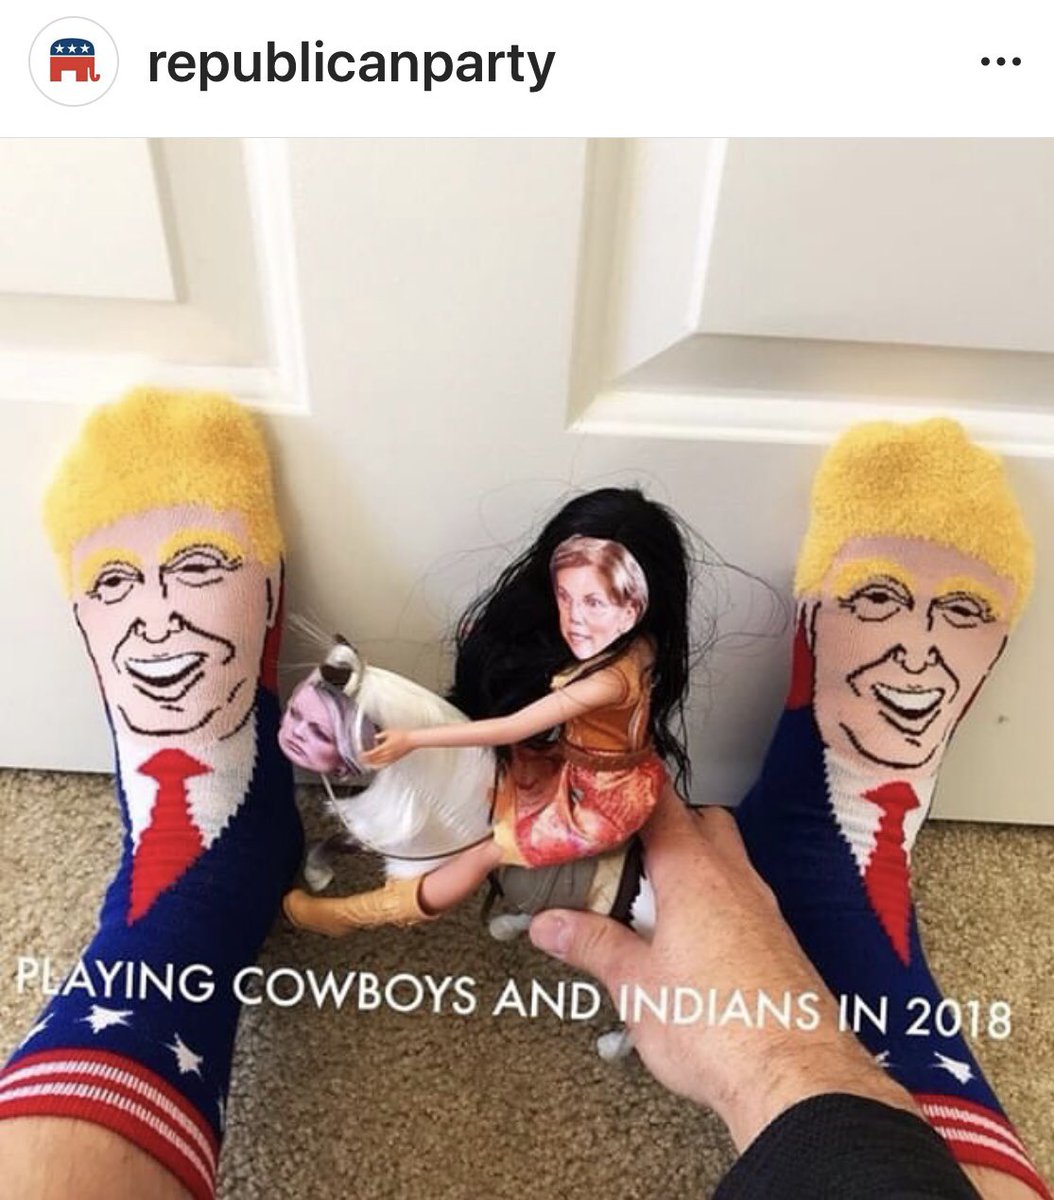 I can't take the credit. This is from Republican Party on Instagram. #maga #Pochahontas #cowboytrump #republicans #RedWaveComing2018 #voteoutsenwarren #WalkAwayFromDemocrats2018<br>http://pic.twitter.com/kMAlilidXE